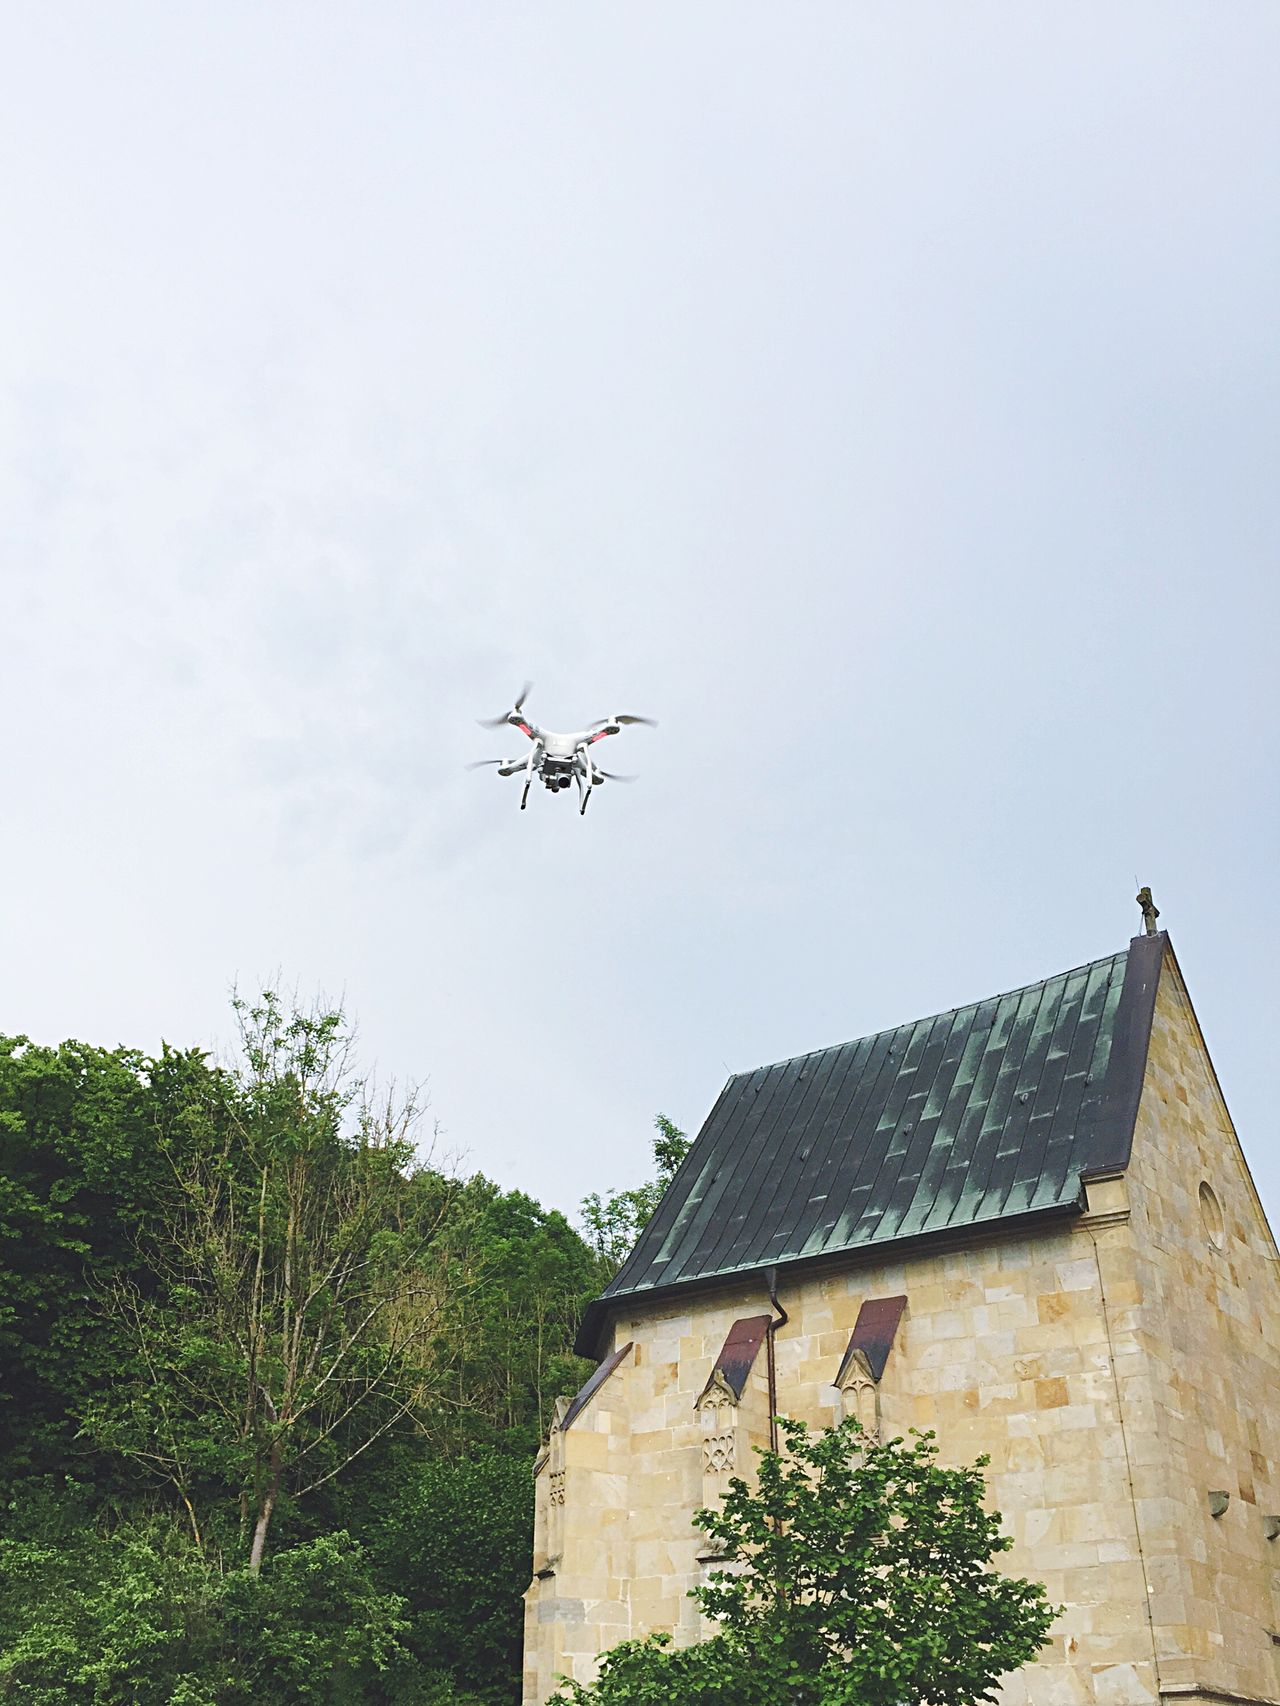 Drohne Drohne Drone  Taking Photos Great Outdoors City Life Germany Deutschland Travelling Creuzburg Travel Photography Cityscape Surveillance